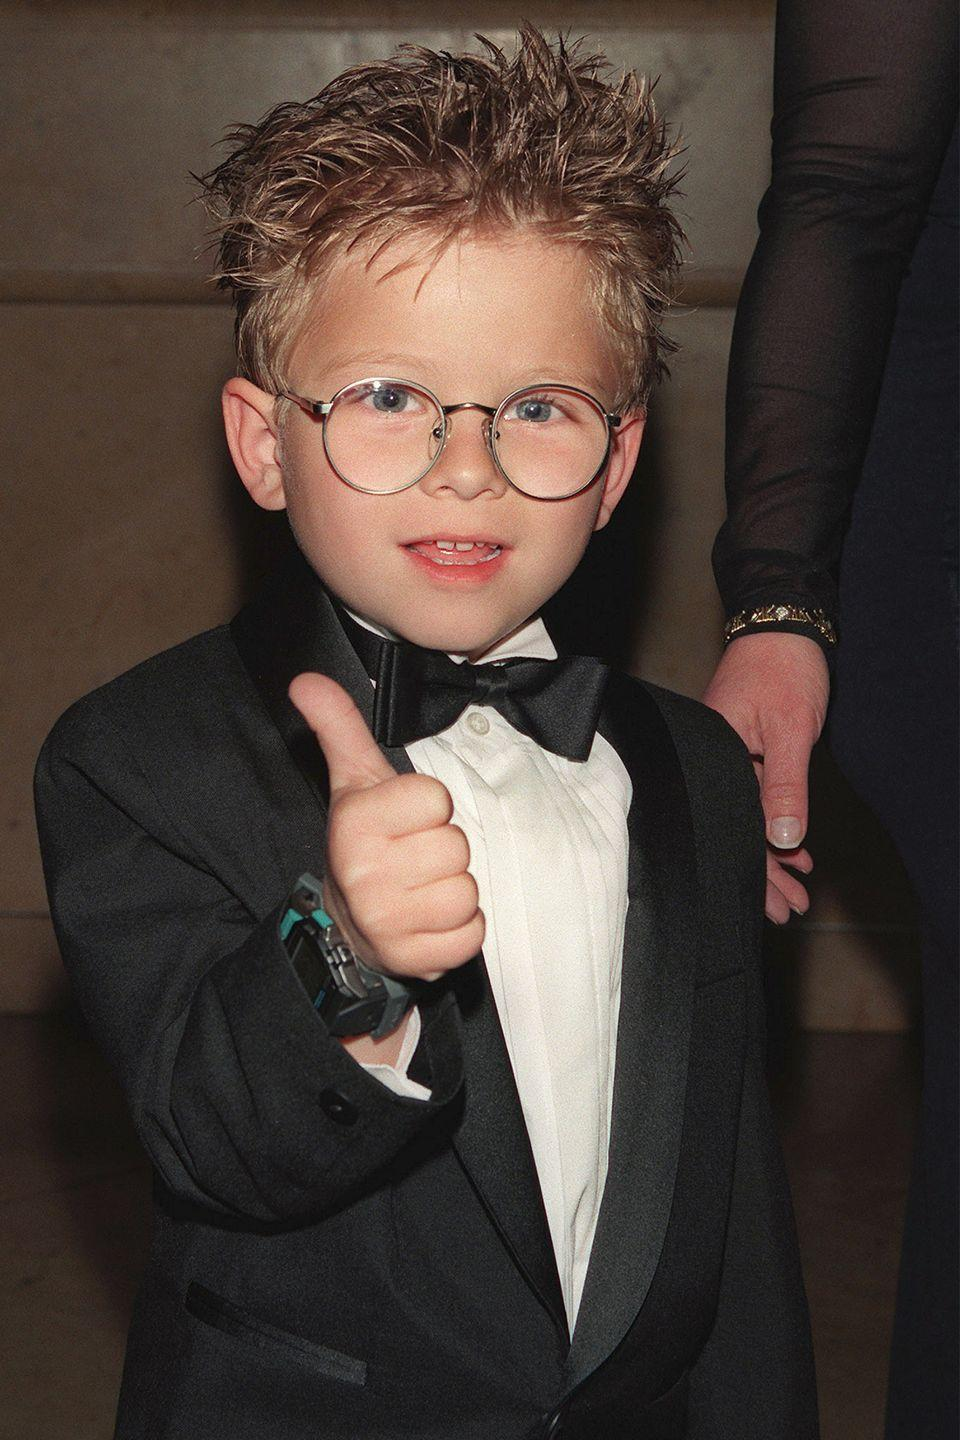 <p>It's hard to believe it's been over 20 years since Jonathan Lipnicki stole the show as Ray Boyd, the precocious and lovable kid in <em>Jerry Maguire</em>. You also might recognize him from the <em>Stuart Little</em> films, where he played George Little. </p>